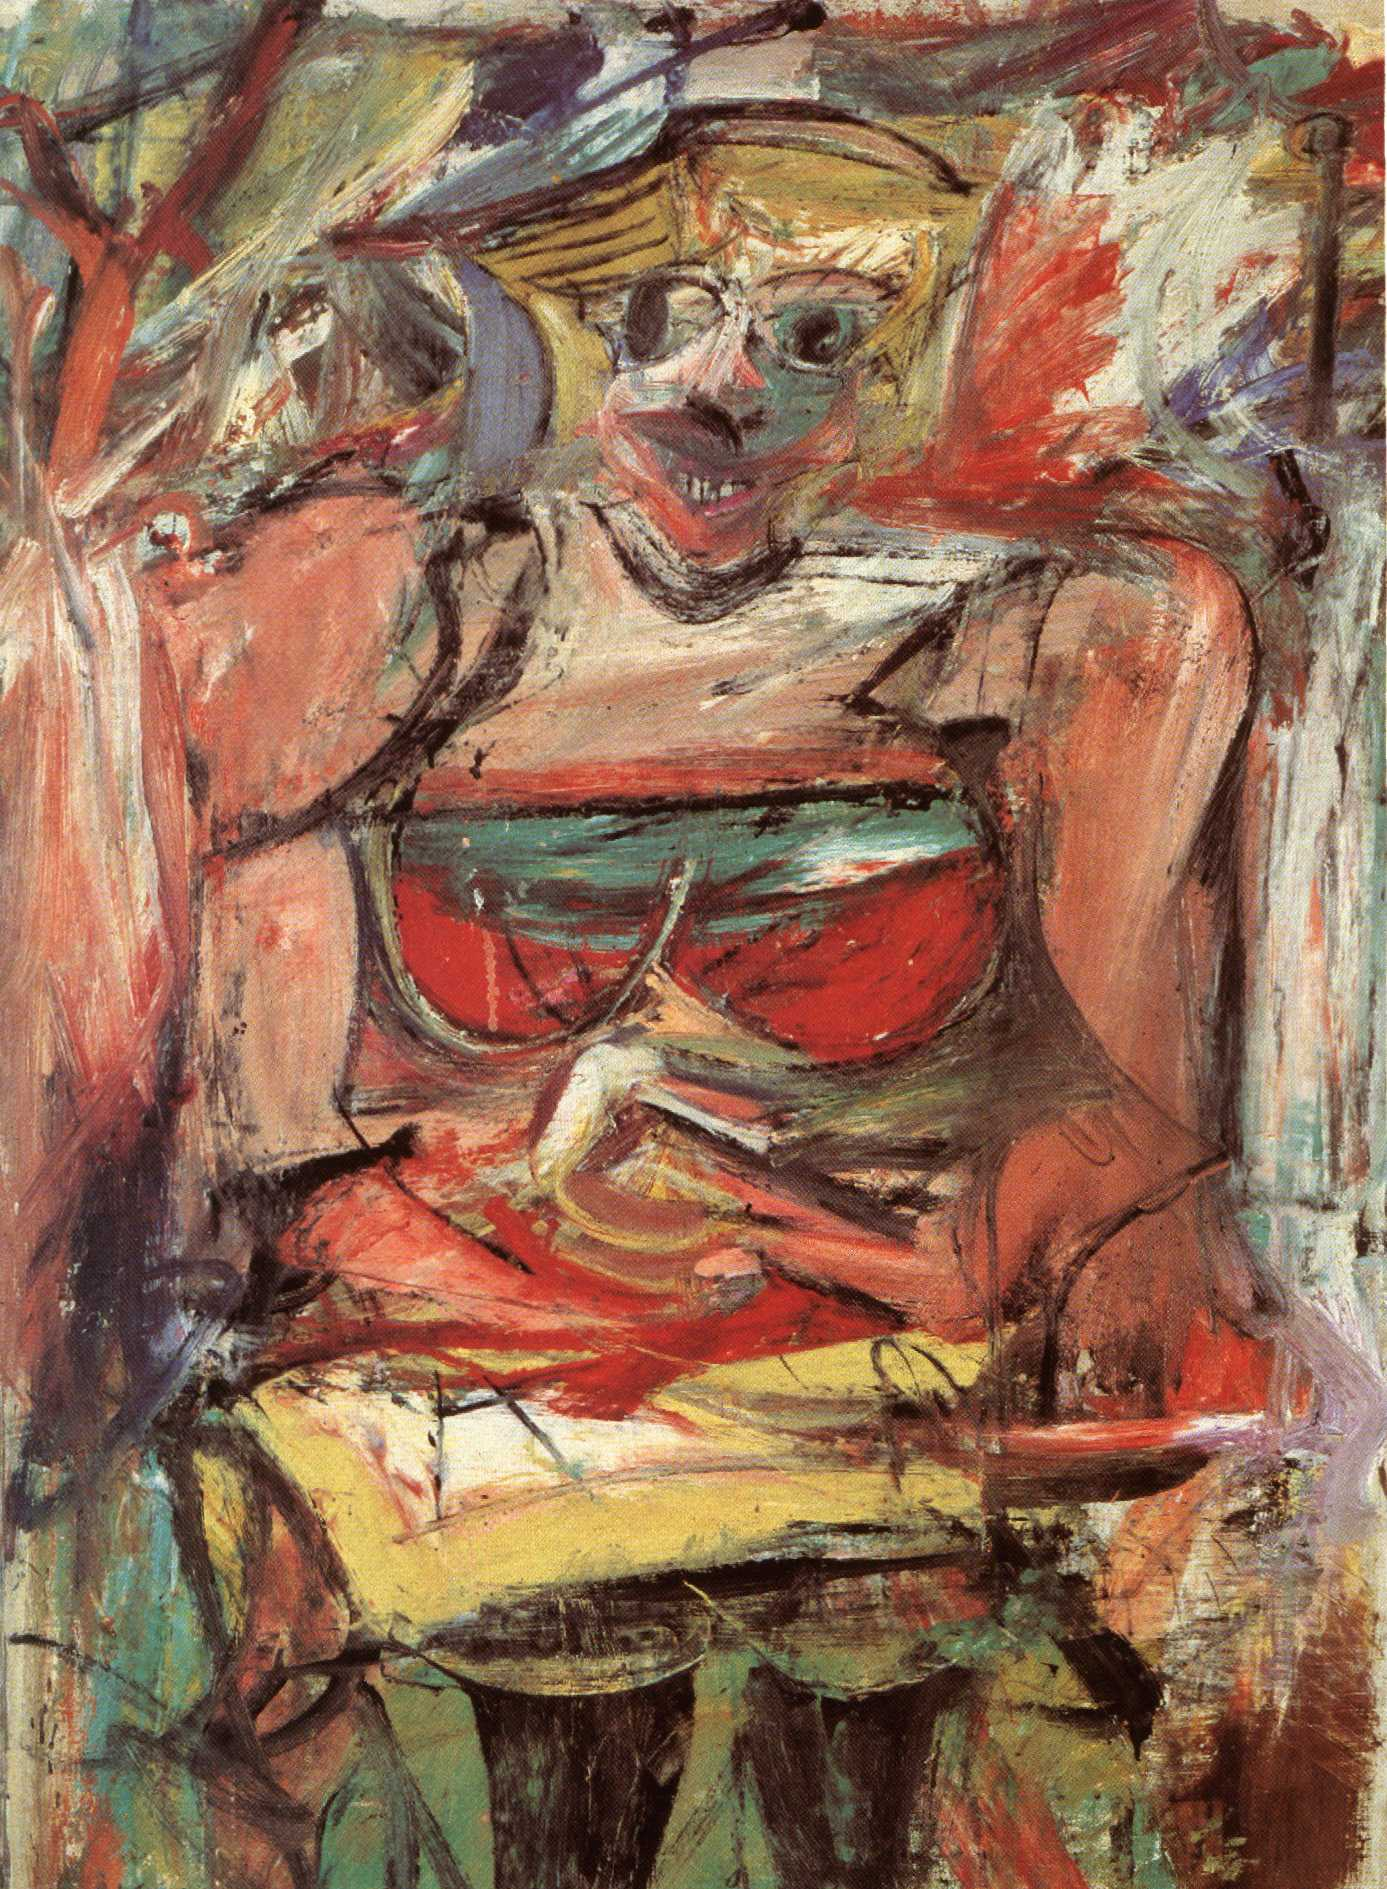 Woman V  1952-53  oil  amp  charcoal on canvas Willem De Kooning Abstract Expressionist Paintings